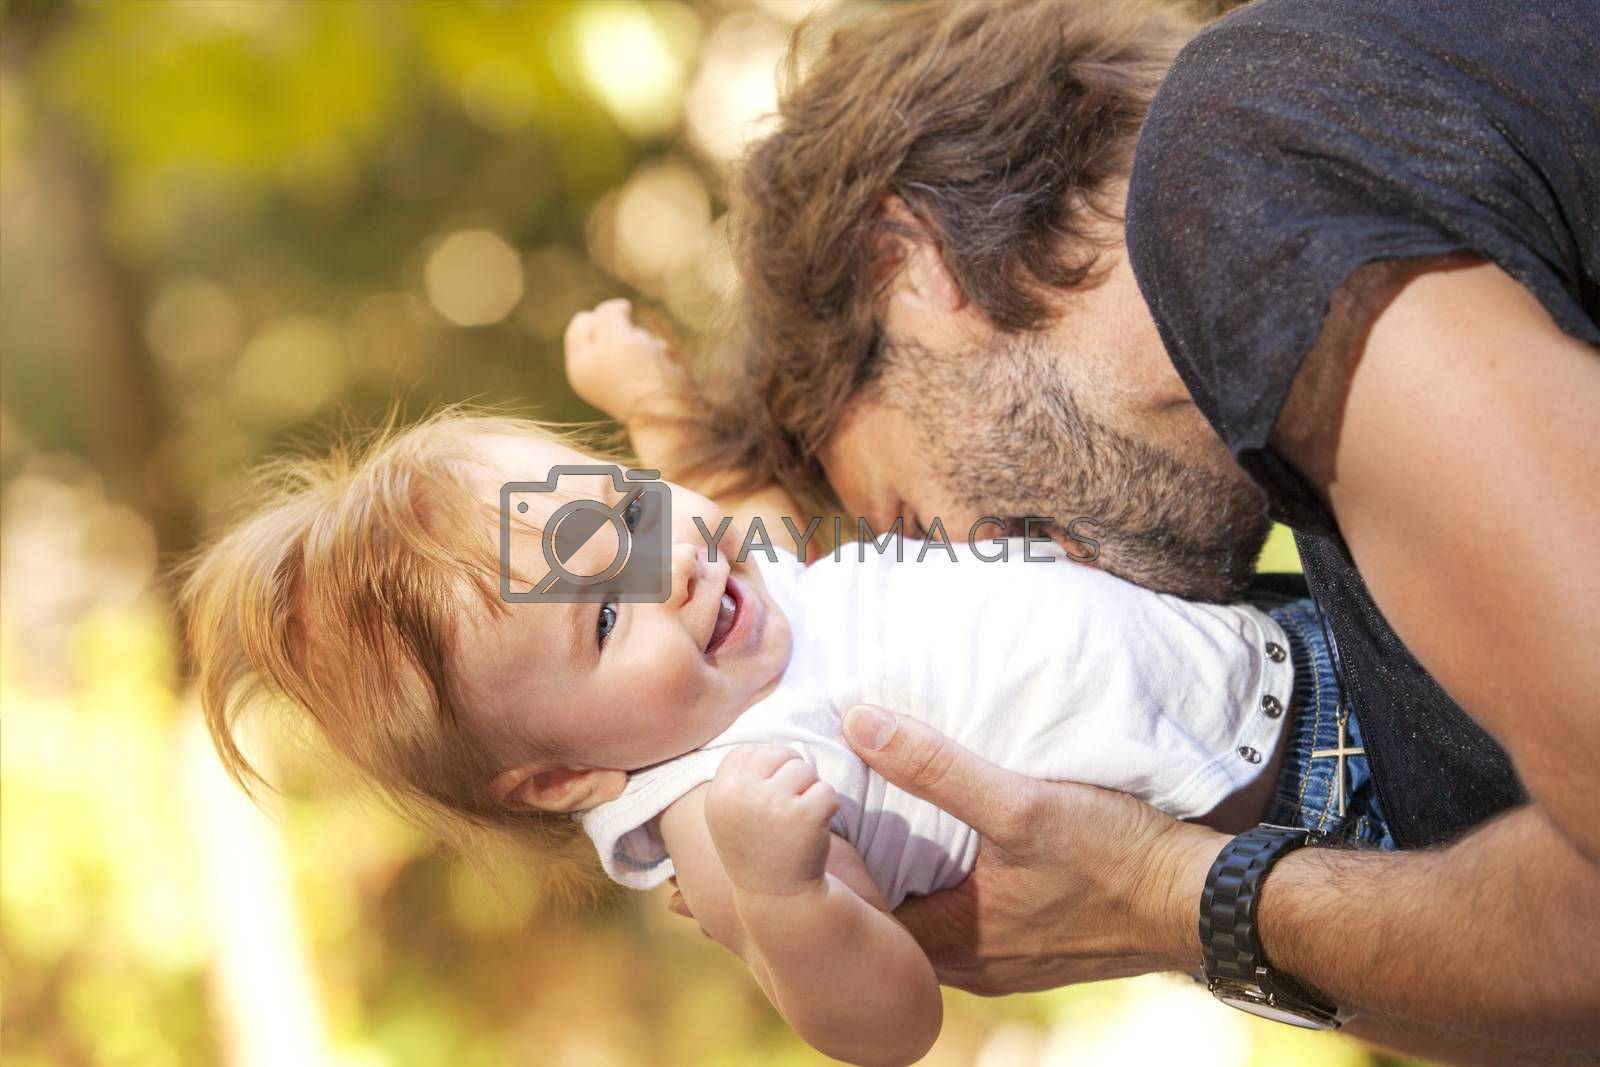 A cute little baby is laughing while his father is biting him playfully outdoors.